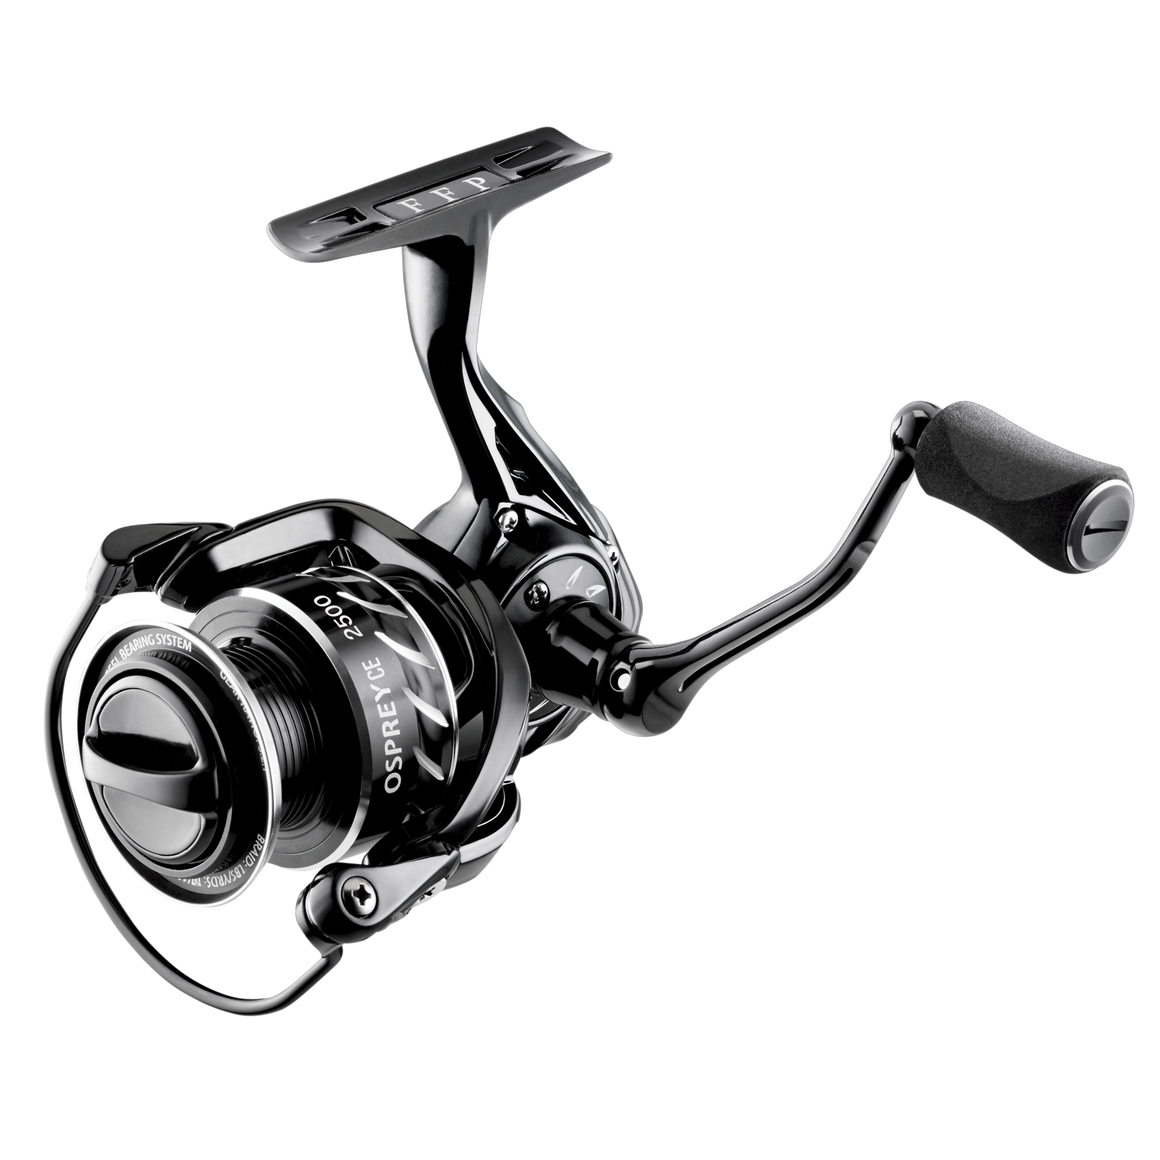 Florida Fishing Products Osprey CE 3000 Spinning Reel